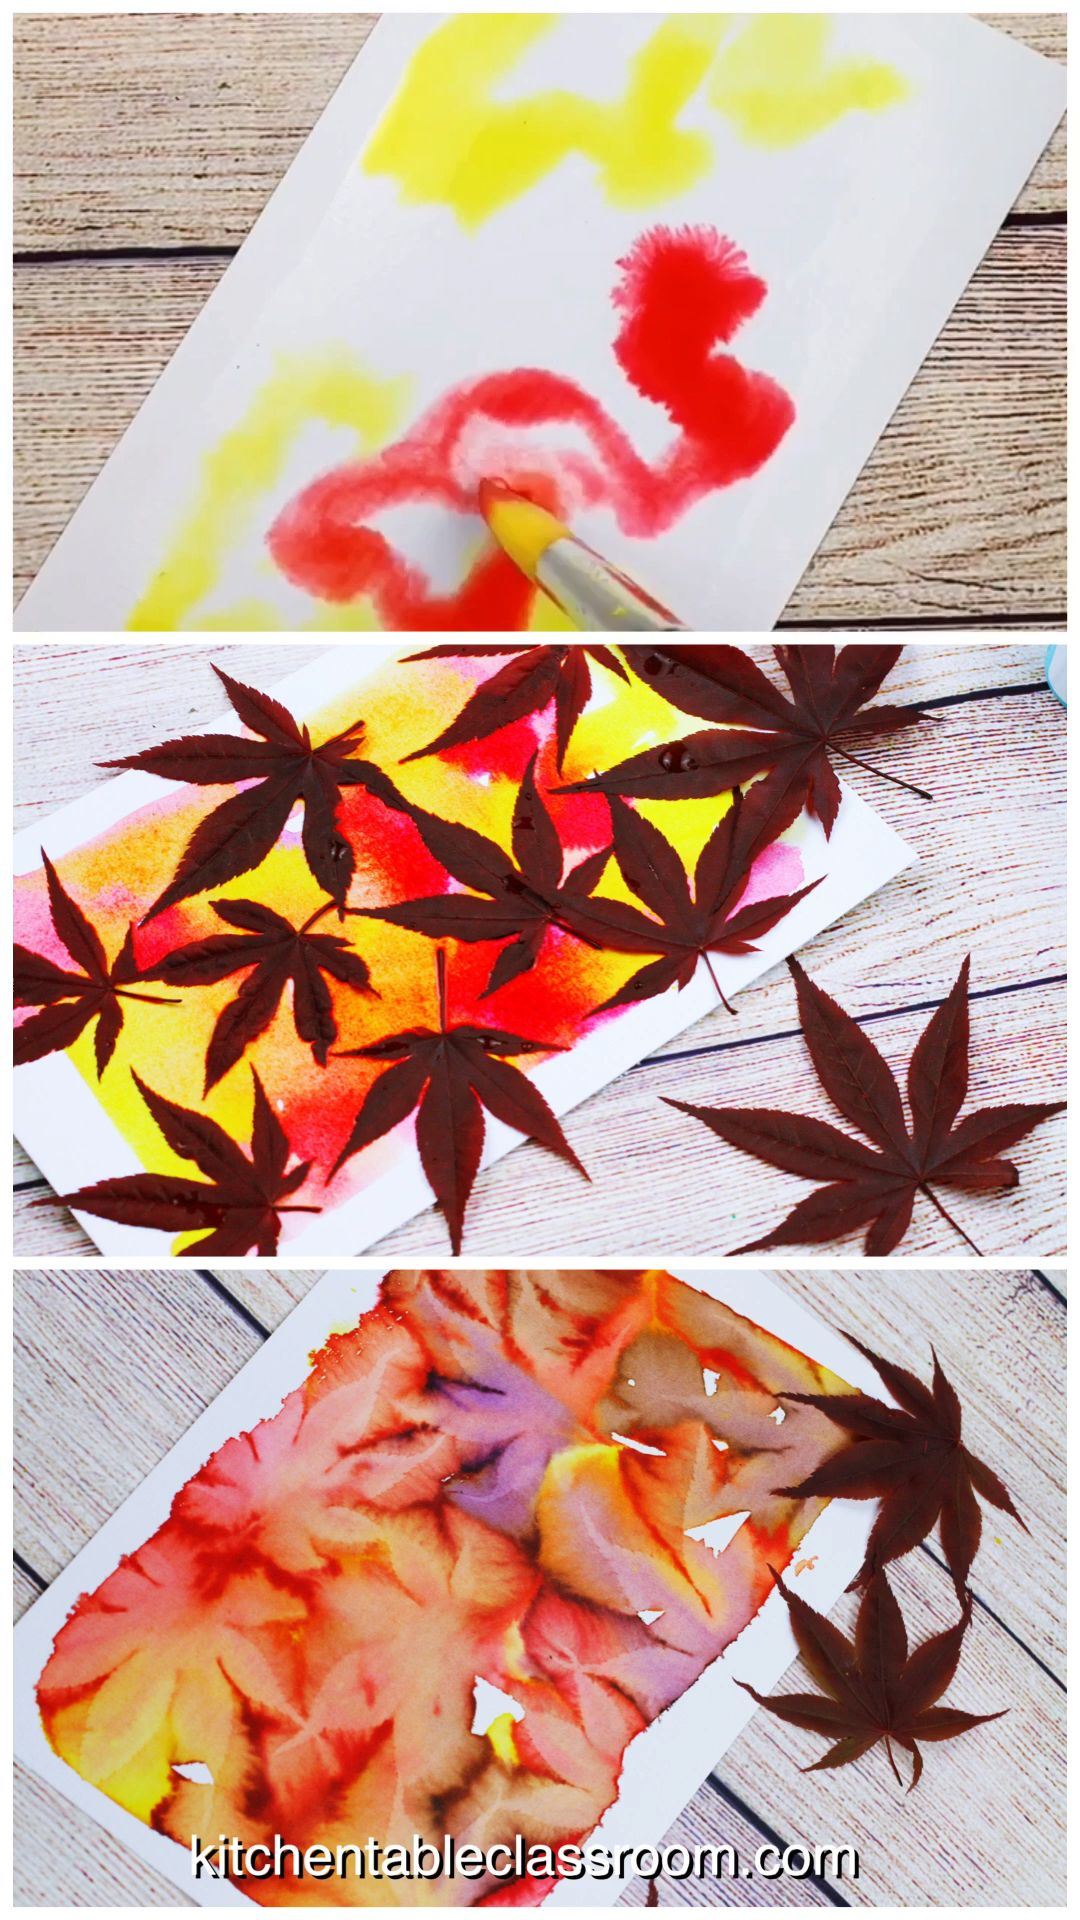 Leaf Printing- Stunning Watercolor Botanical Prints - The Kitchen Table Classroom #leafcrafts